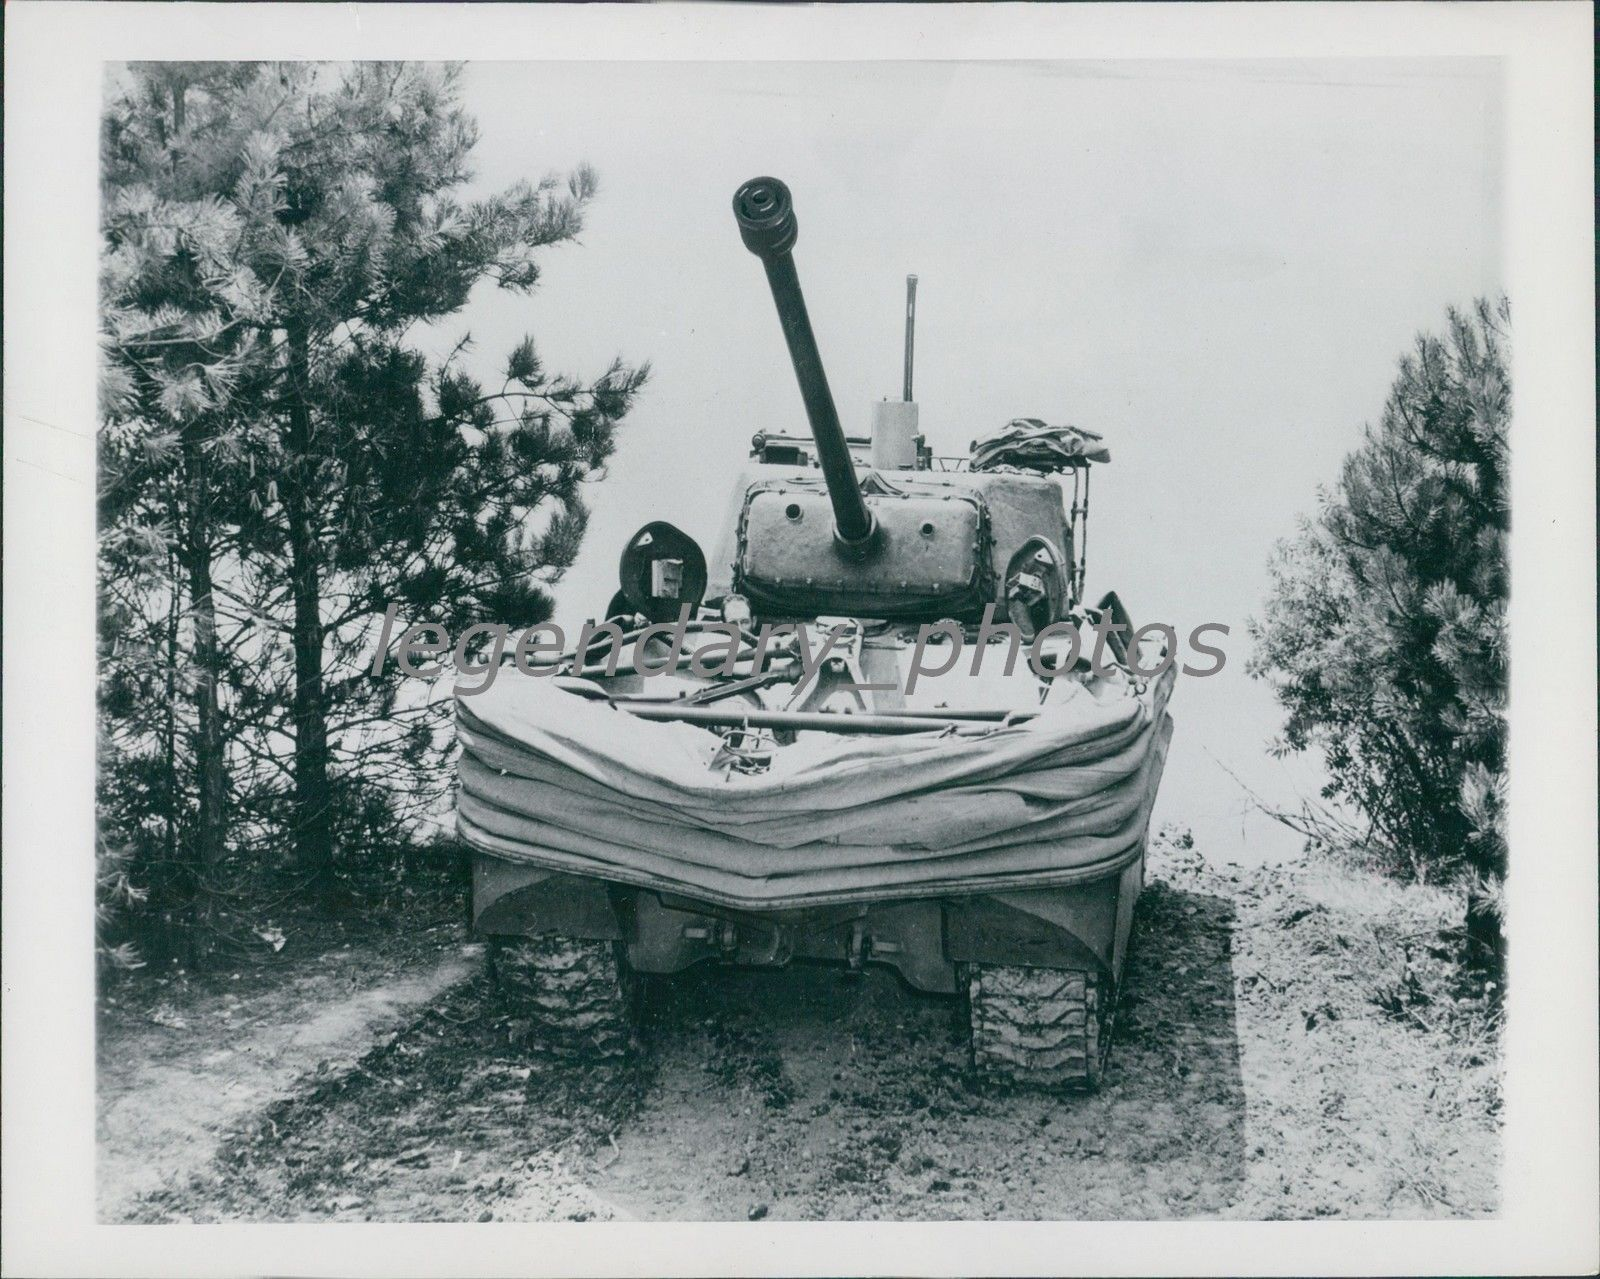 DD (Duplex Drive) Amphibious Tank with intact flotation screen, Normandy, 1944